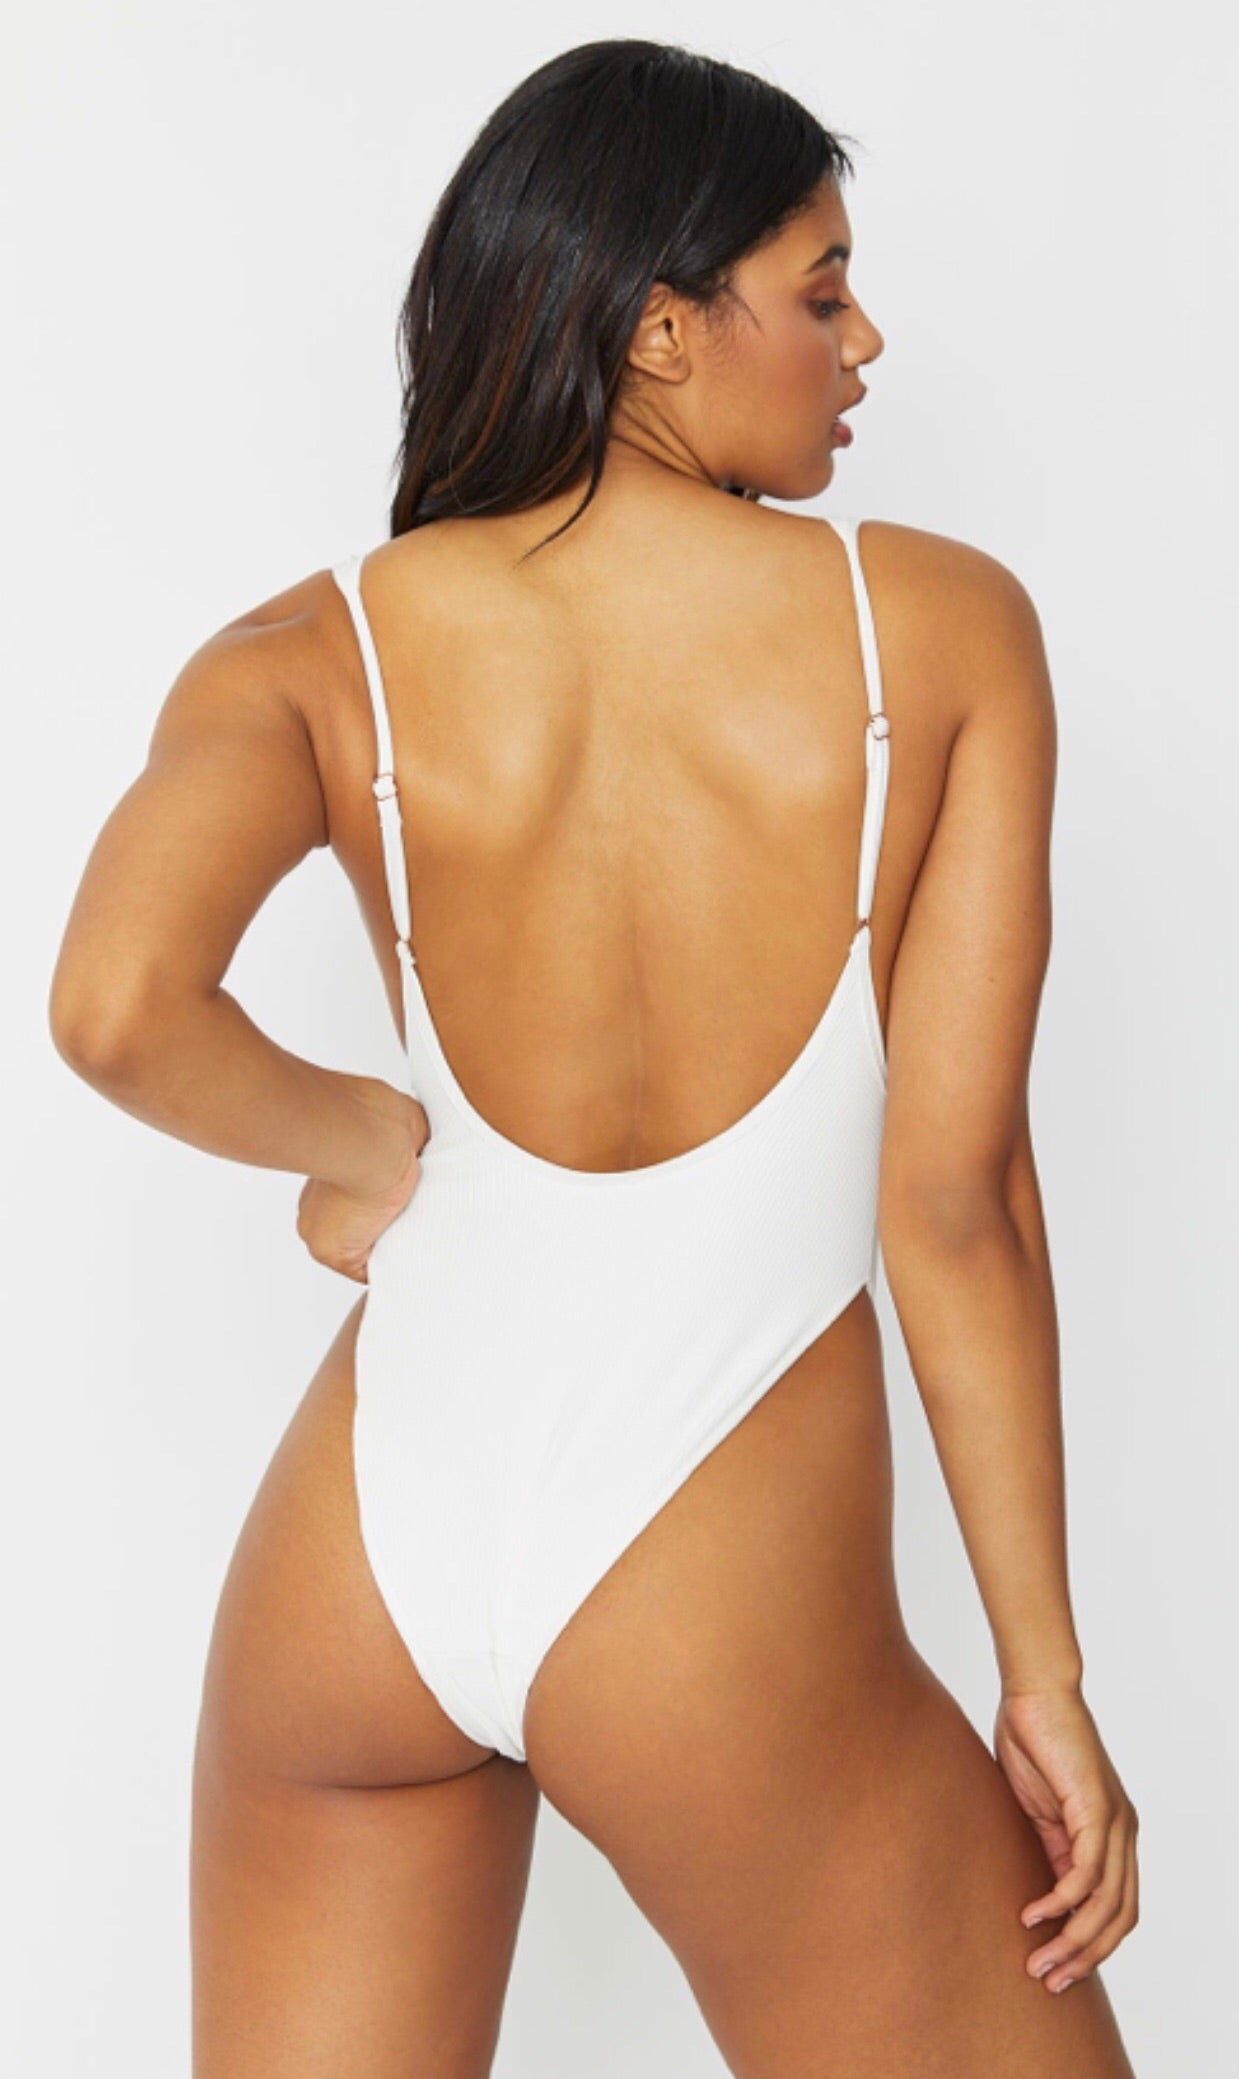 b623f13a298f6 FRANKIES BIKINIS - Adele One Piece in White Rib - Love xo Piper